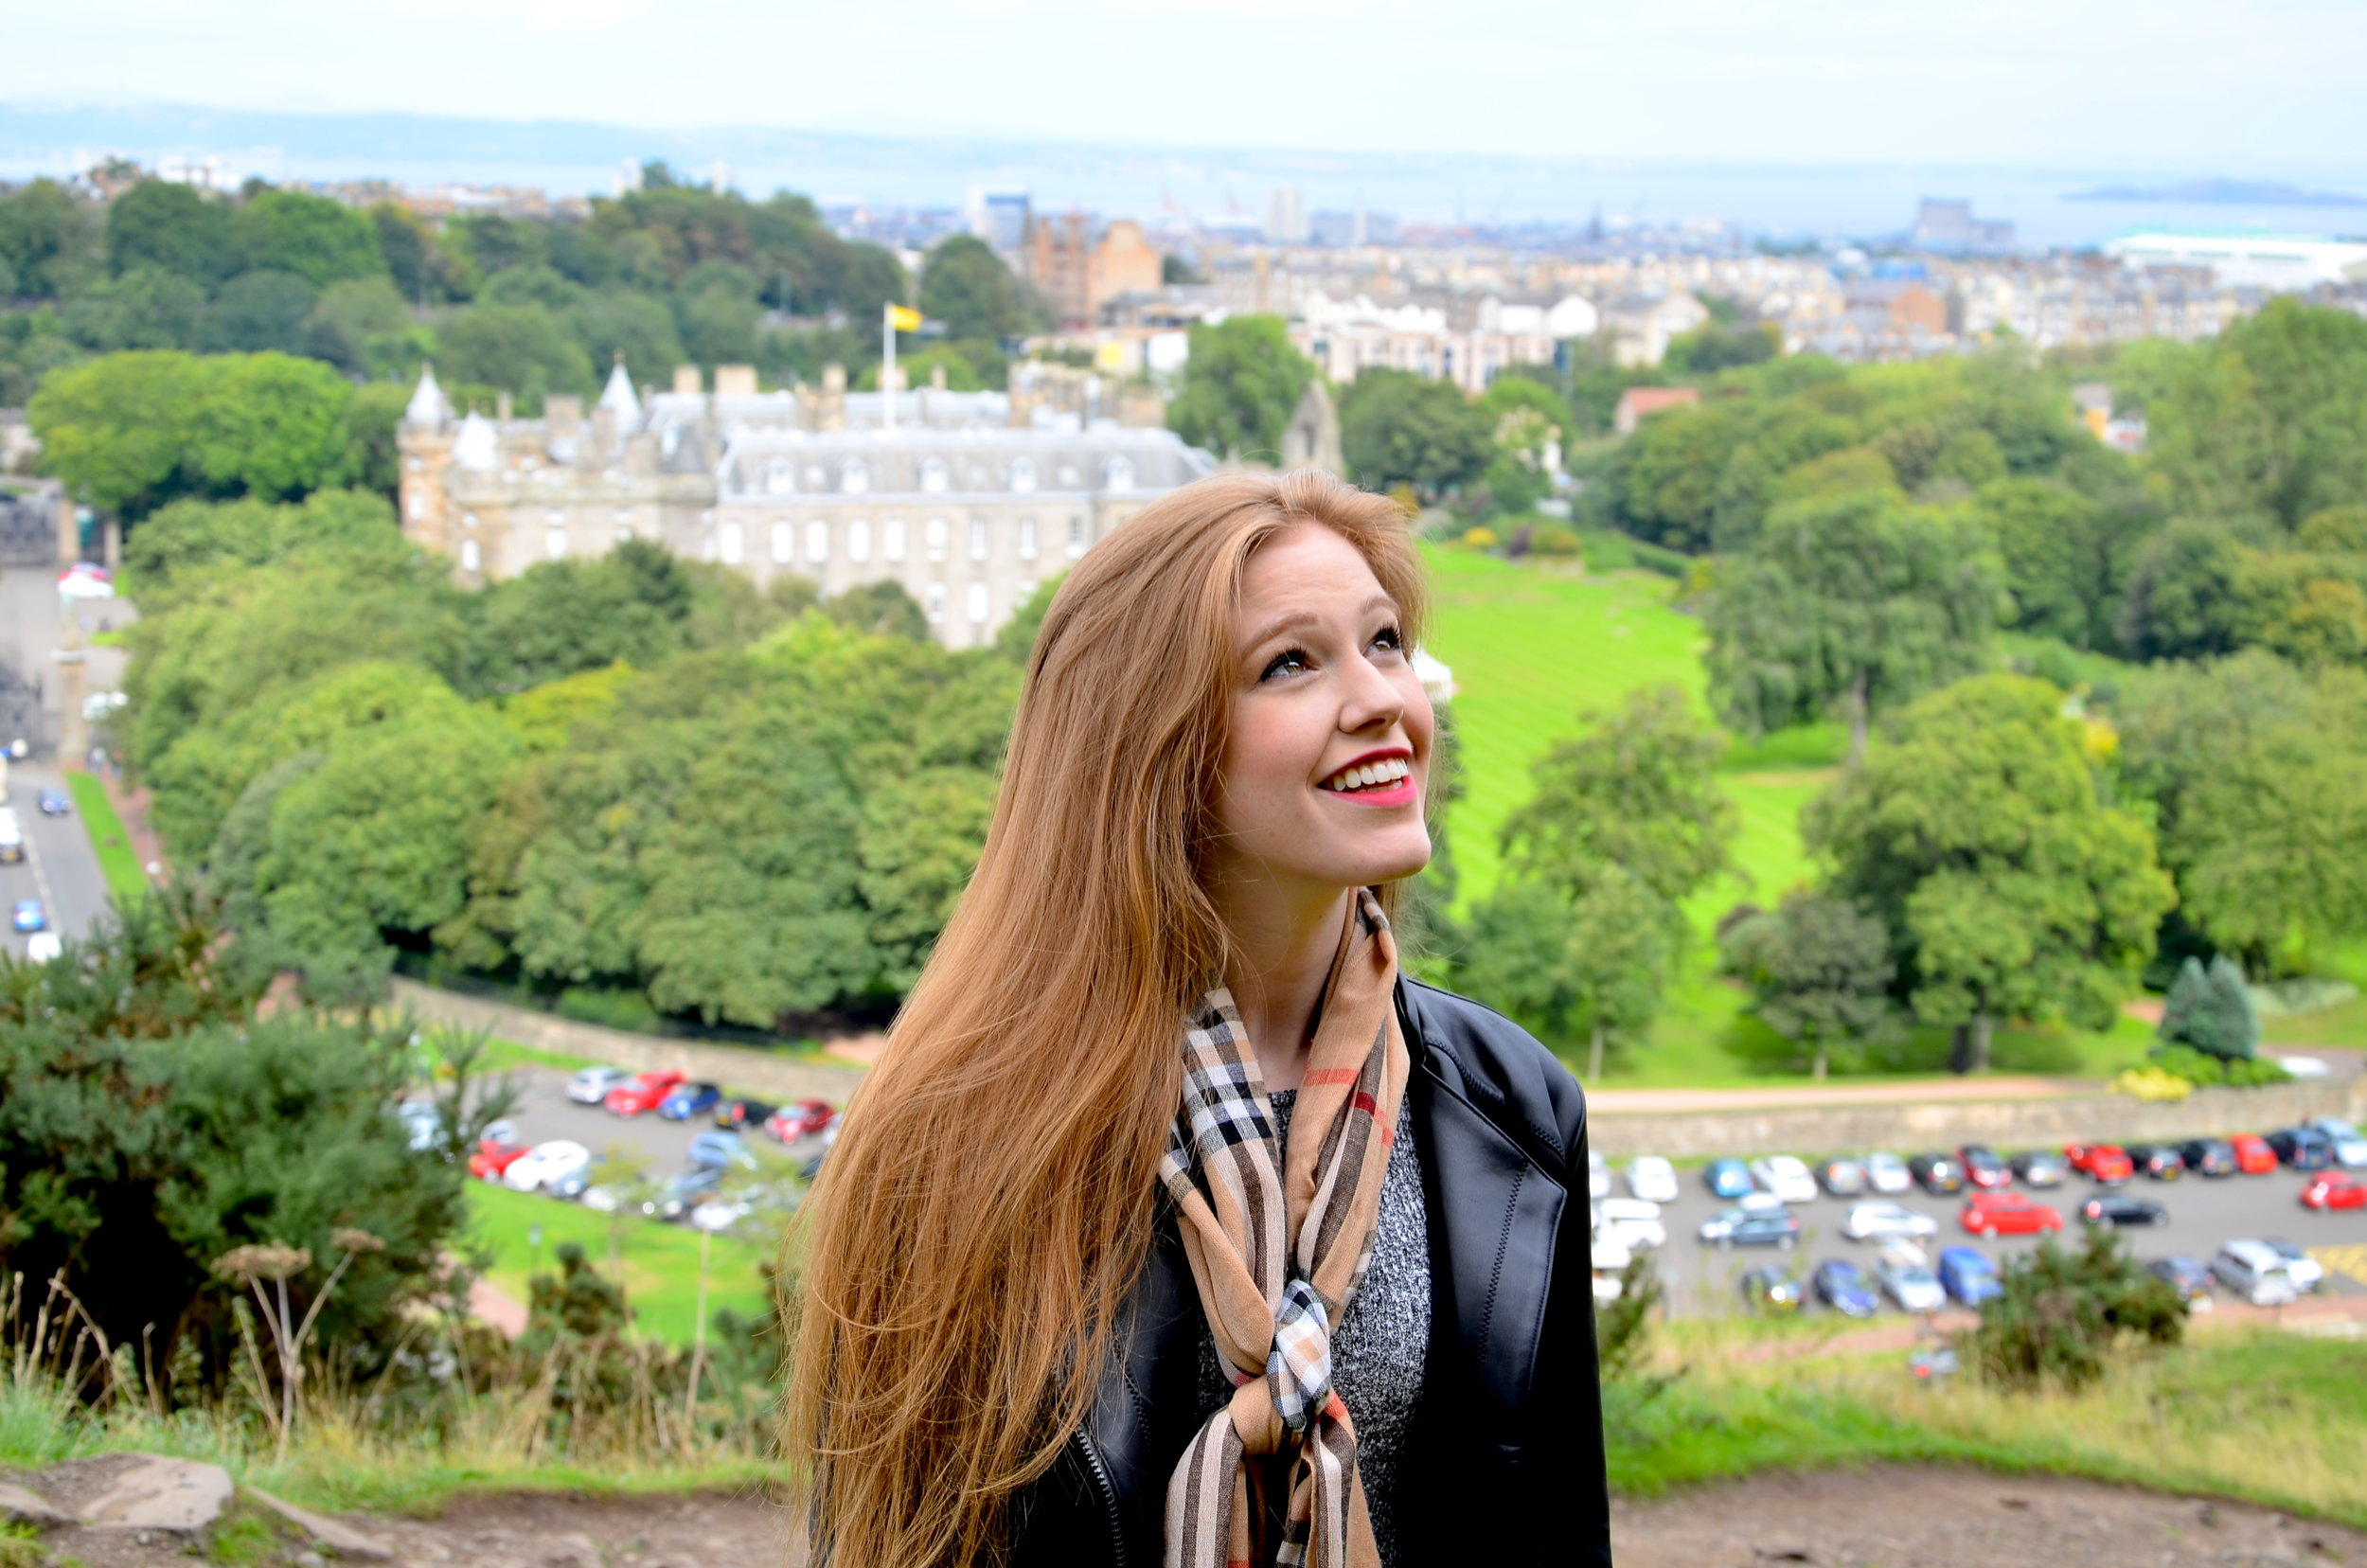 Traveling in London & Scotland! - Seeing the sights and definitely seeing as many stage productions in the West End and Edinborough as I can!